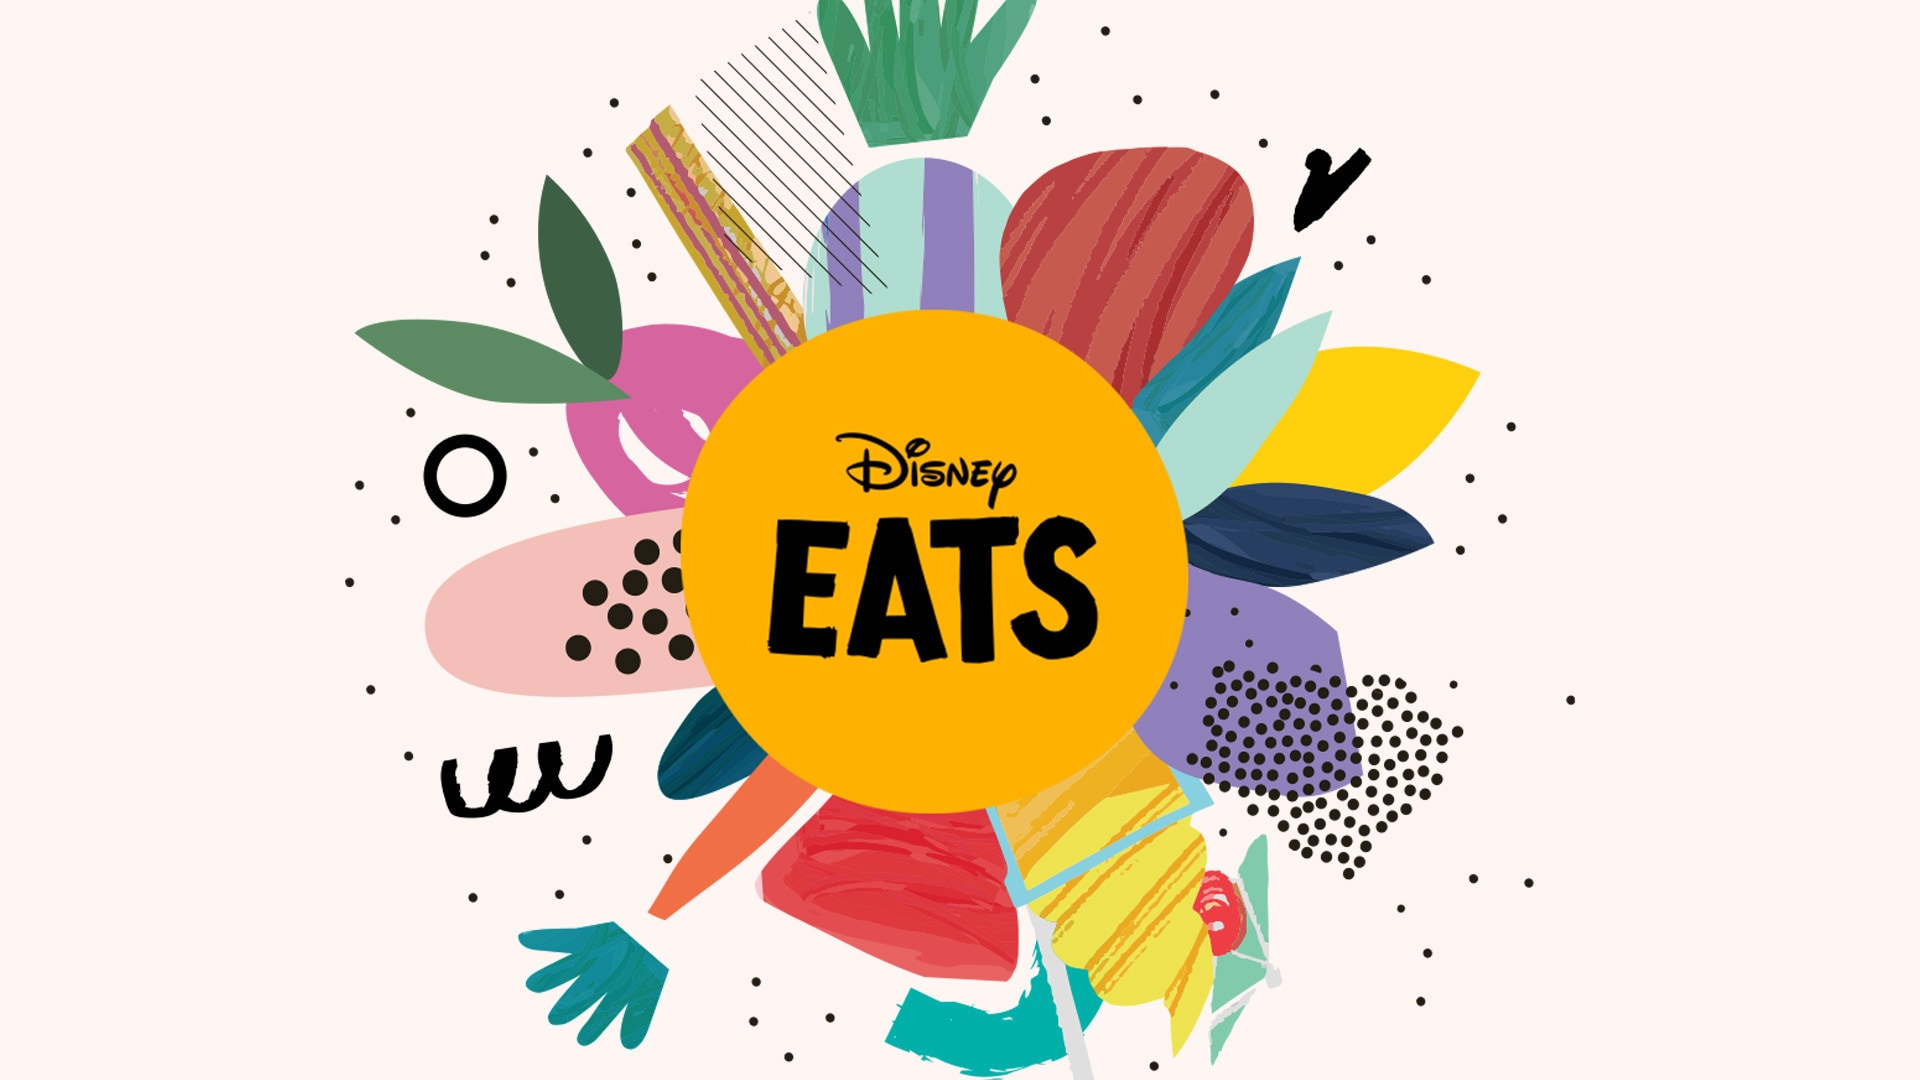 This Is Disney Eats!